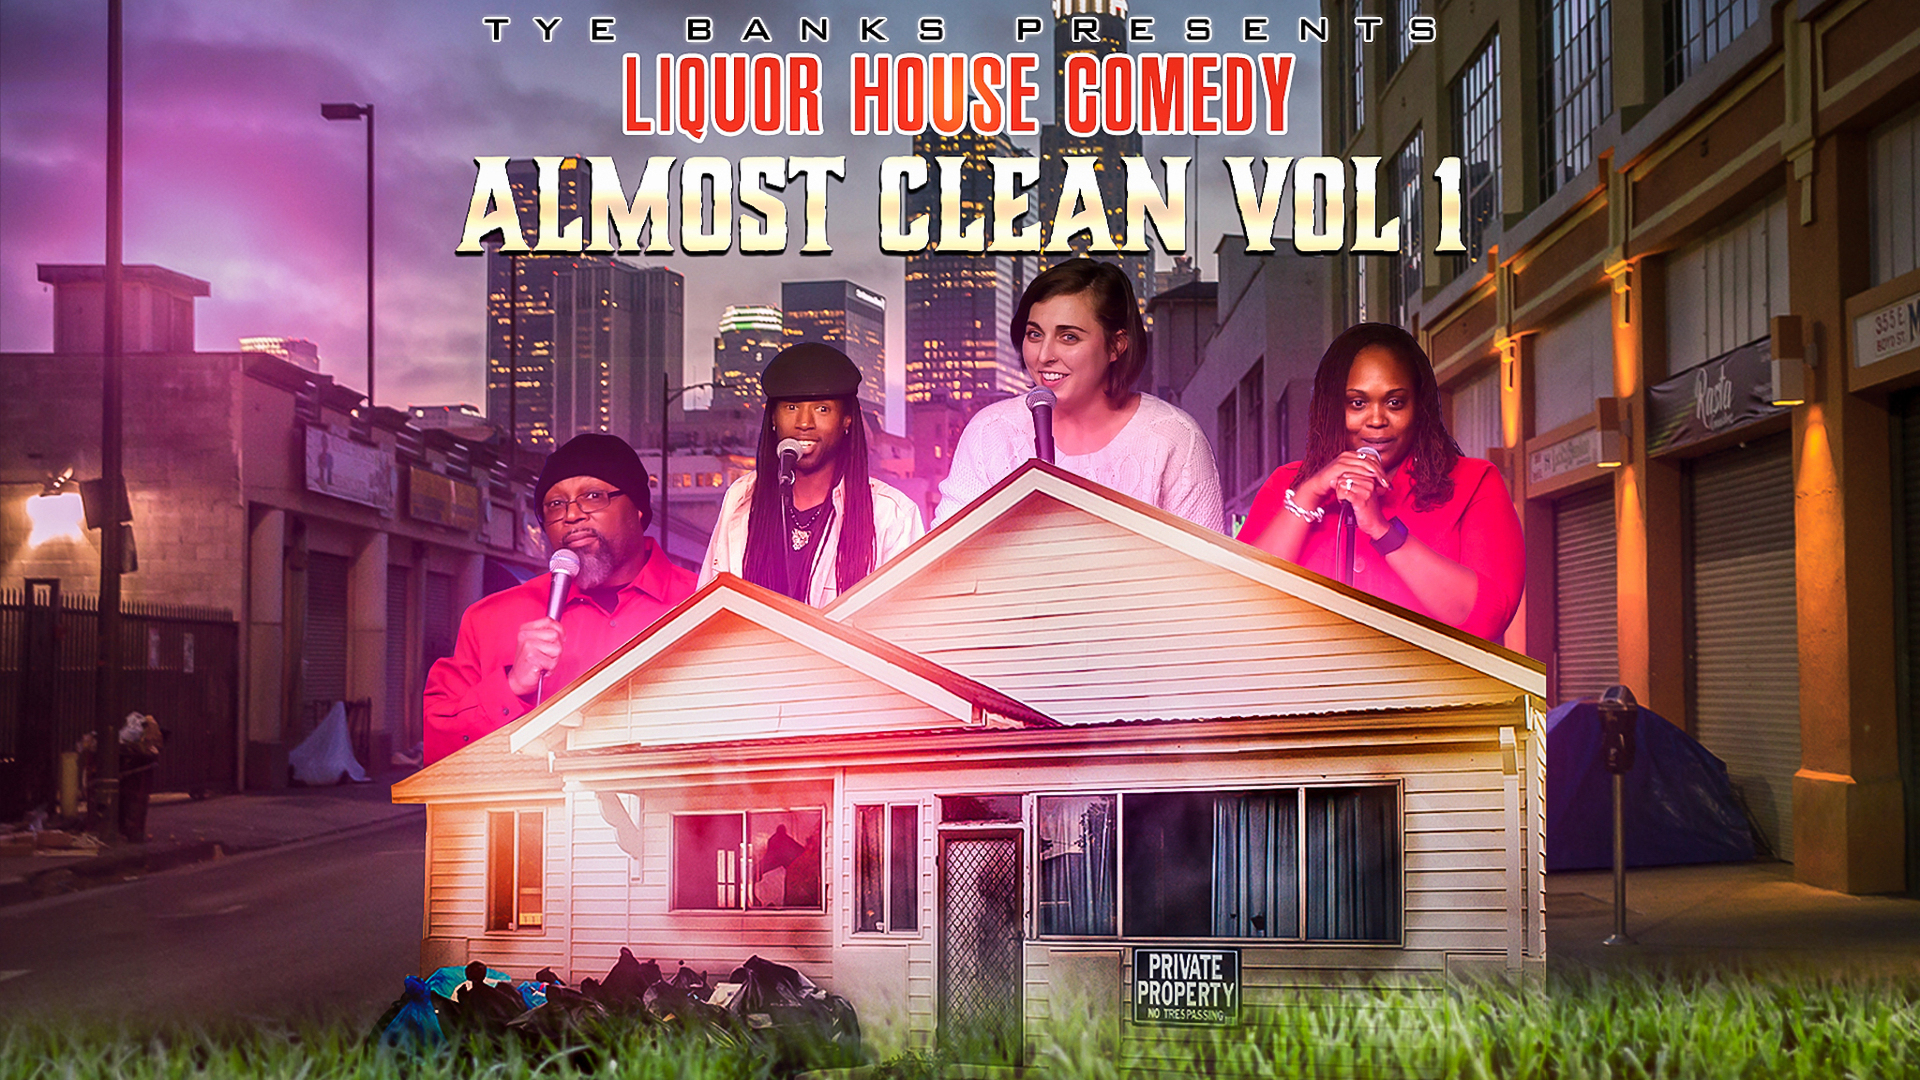 Liquor House Comedy Almost Clean, Vol. 1